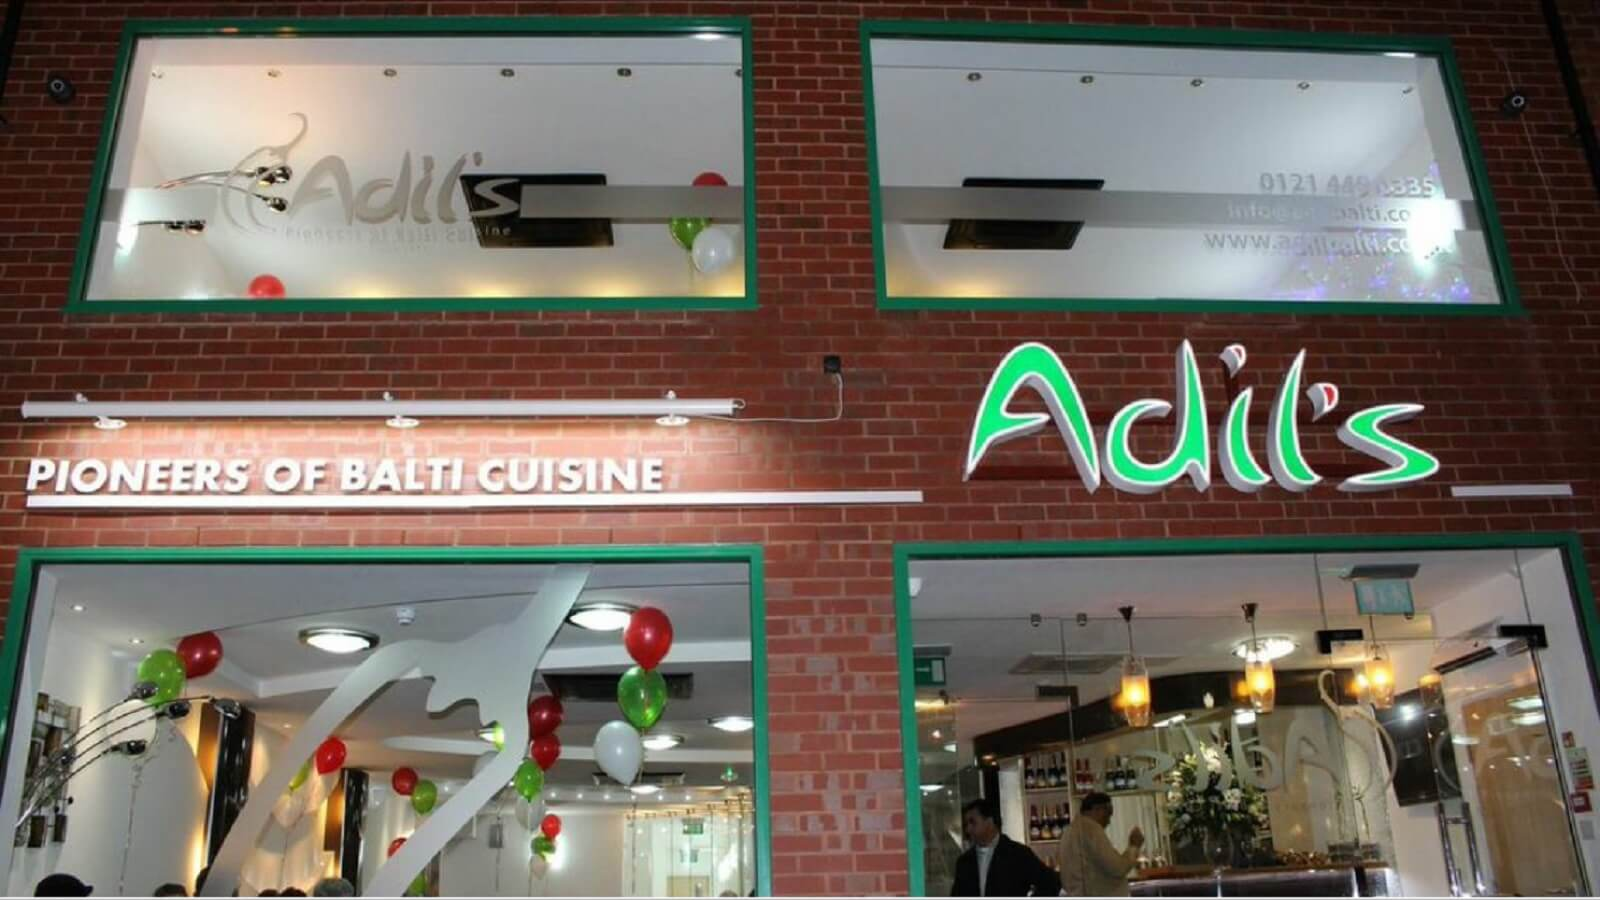 Adil's – The Pioneers of Balti Cuisine